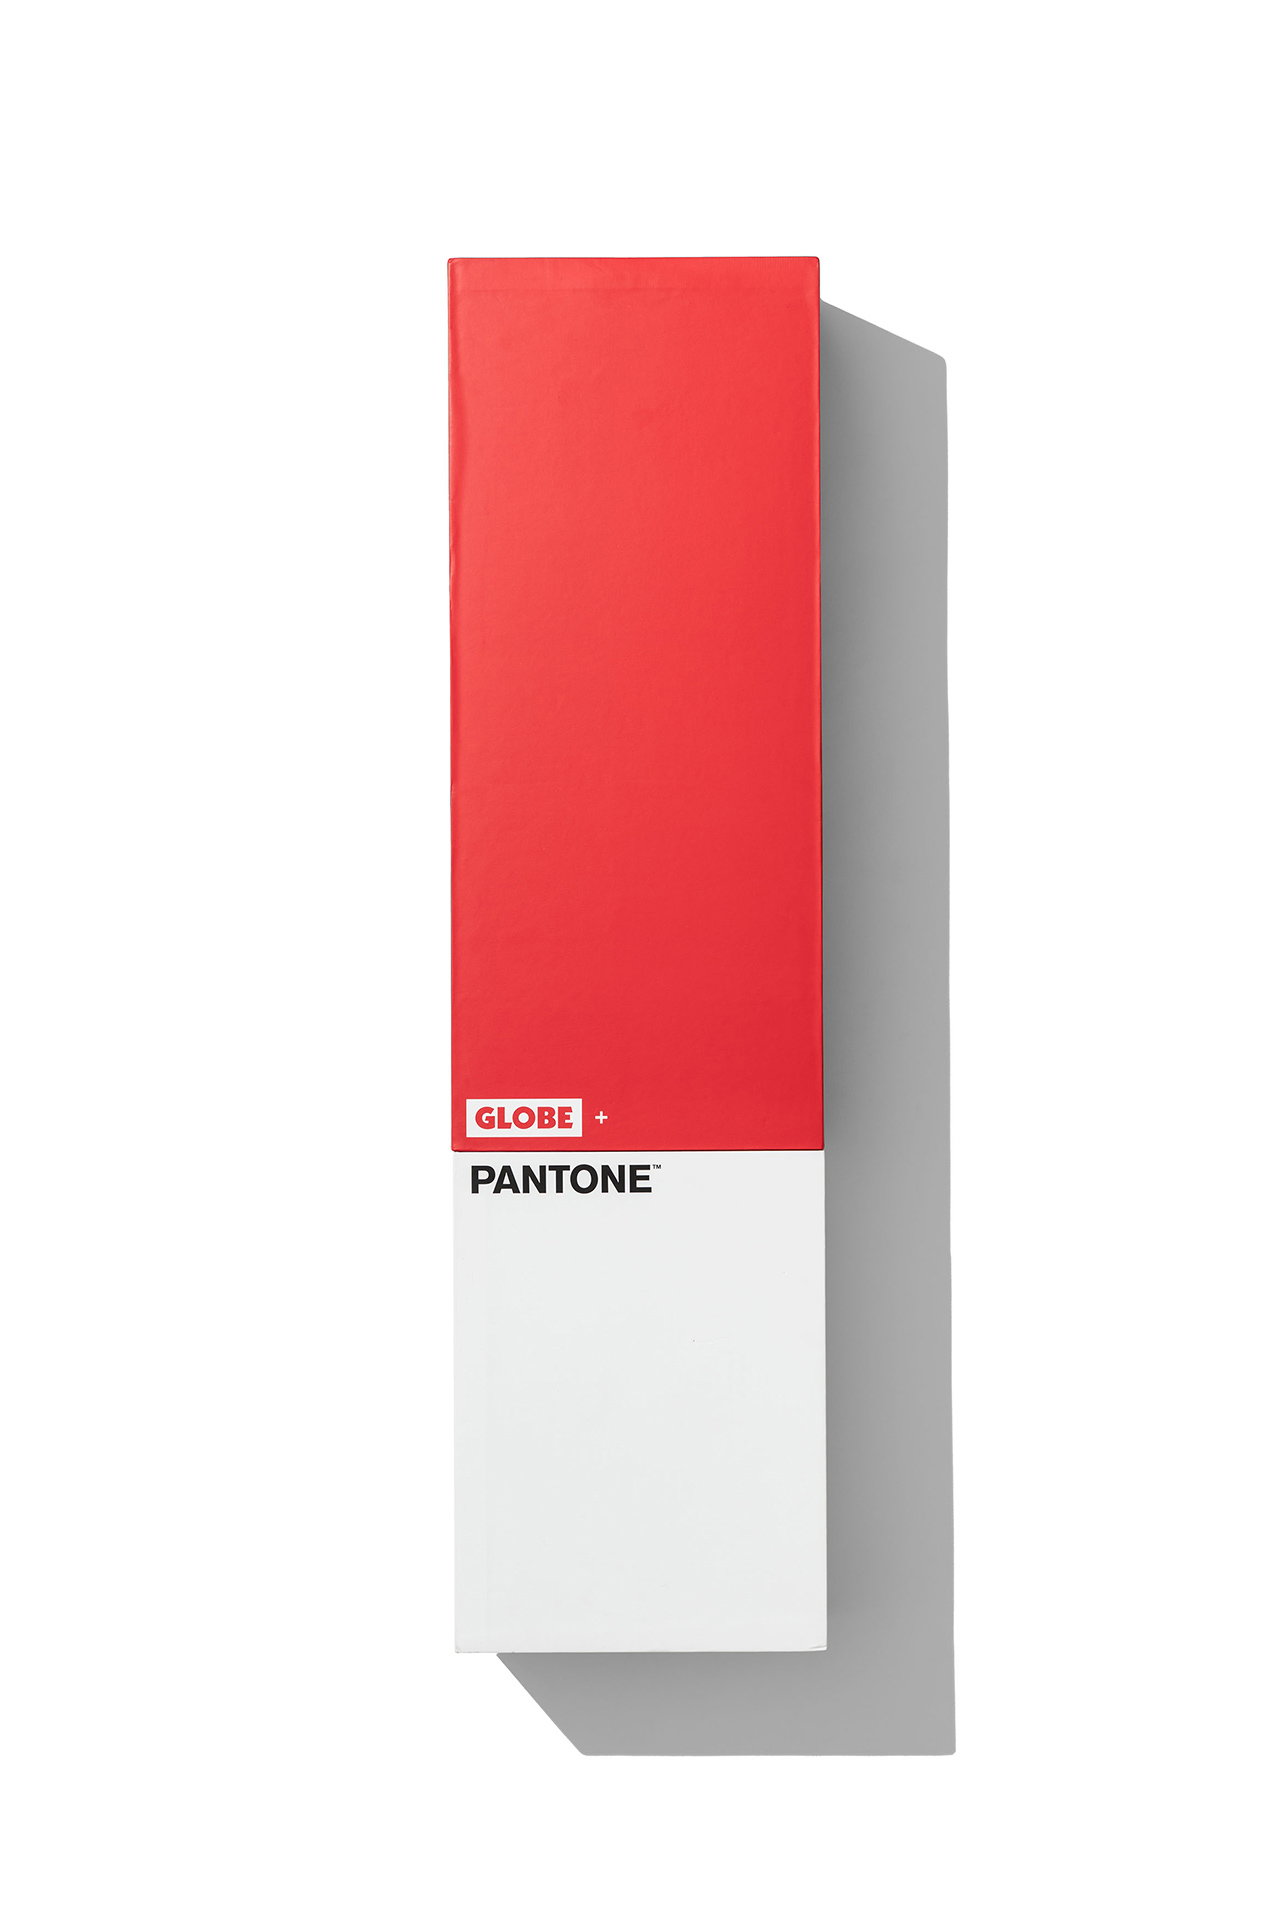 Globe x Pantone Limited Edition Box Set